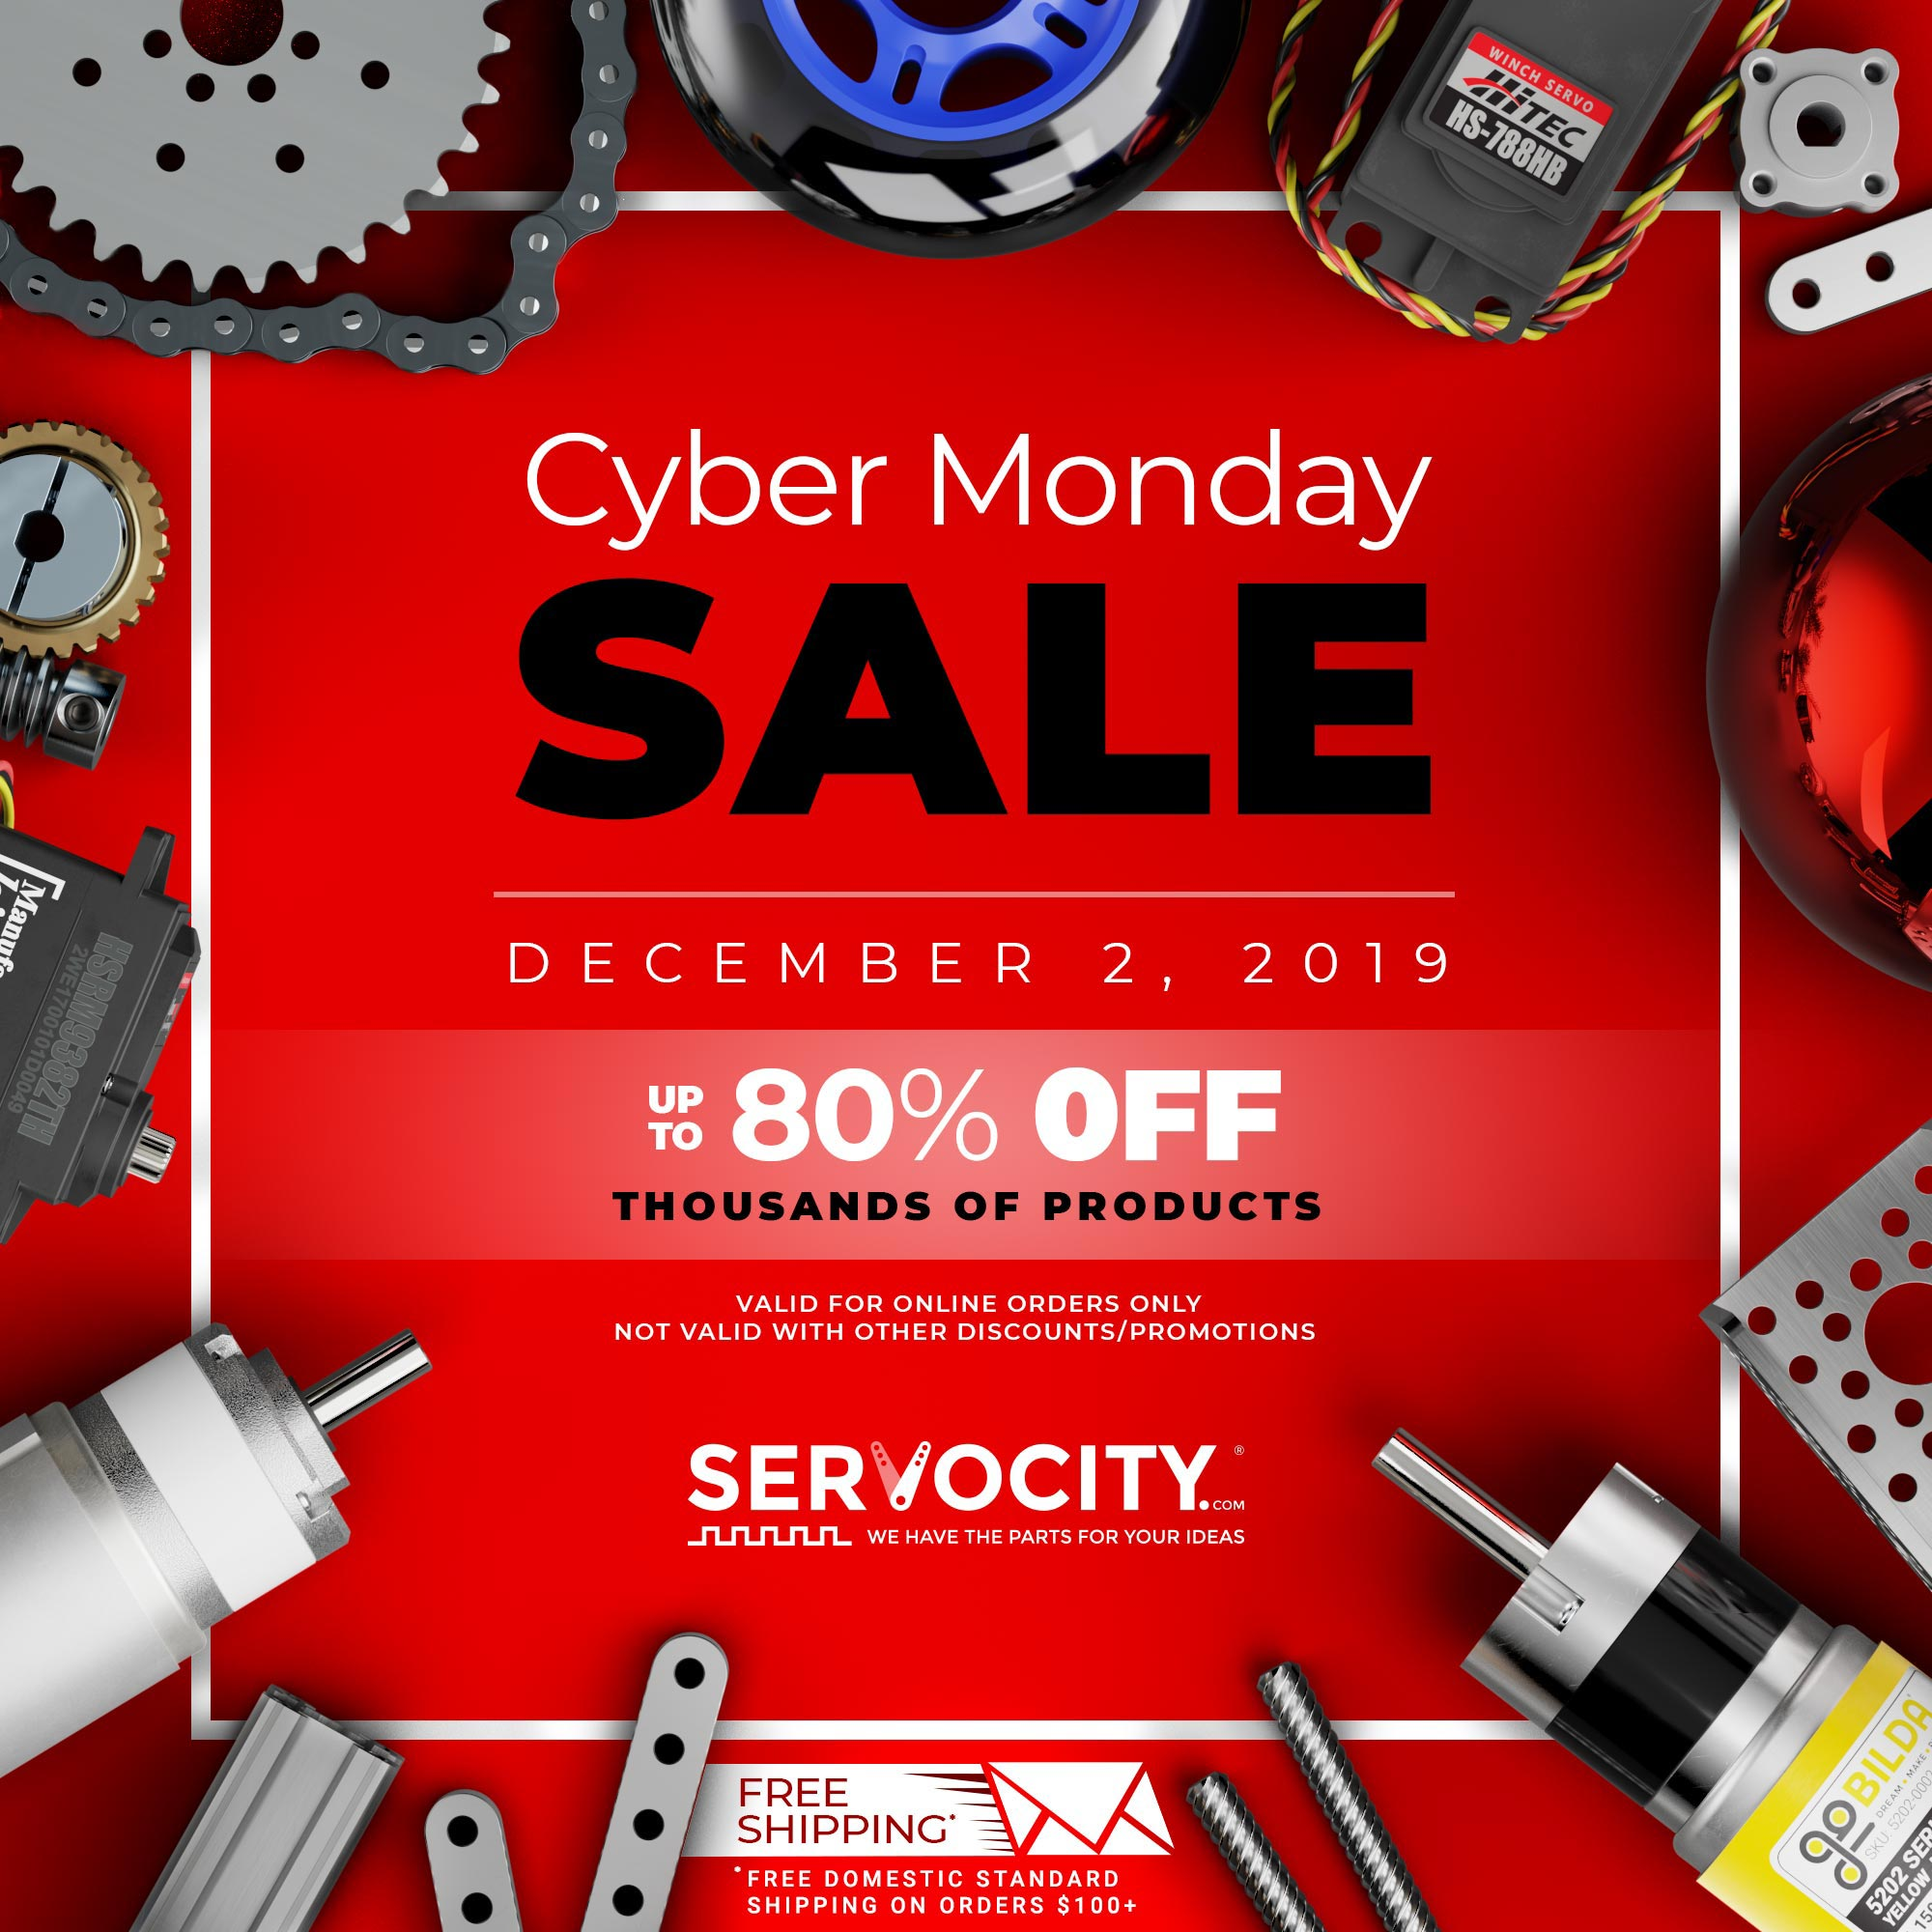 a12859367-136-CyberMonday_2019_GENERAL_2000x2000_Logo_02.jpg